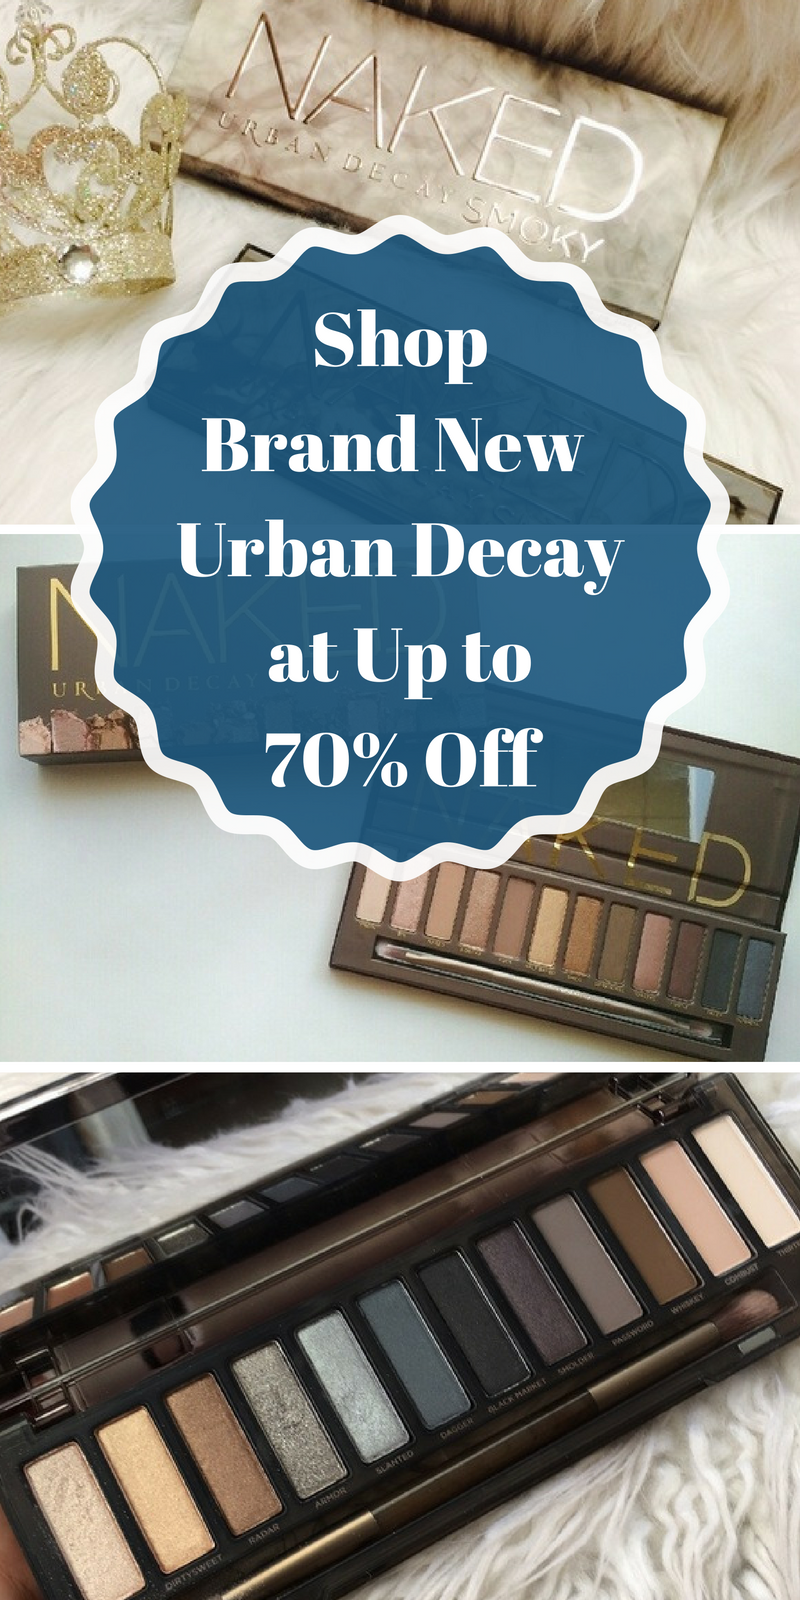 Urban Decay Sale Happening Now! Shop brand new makeup from